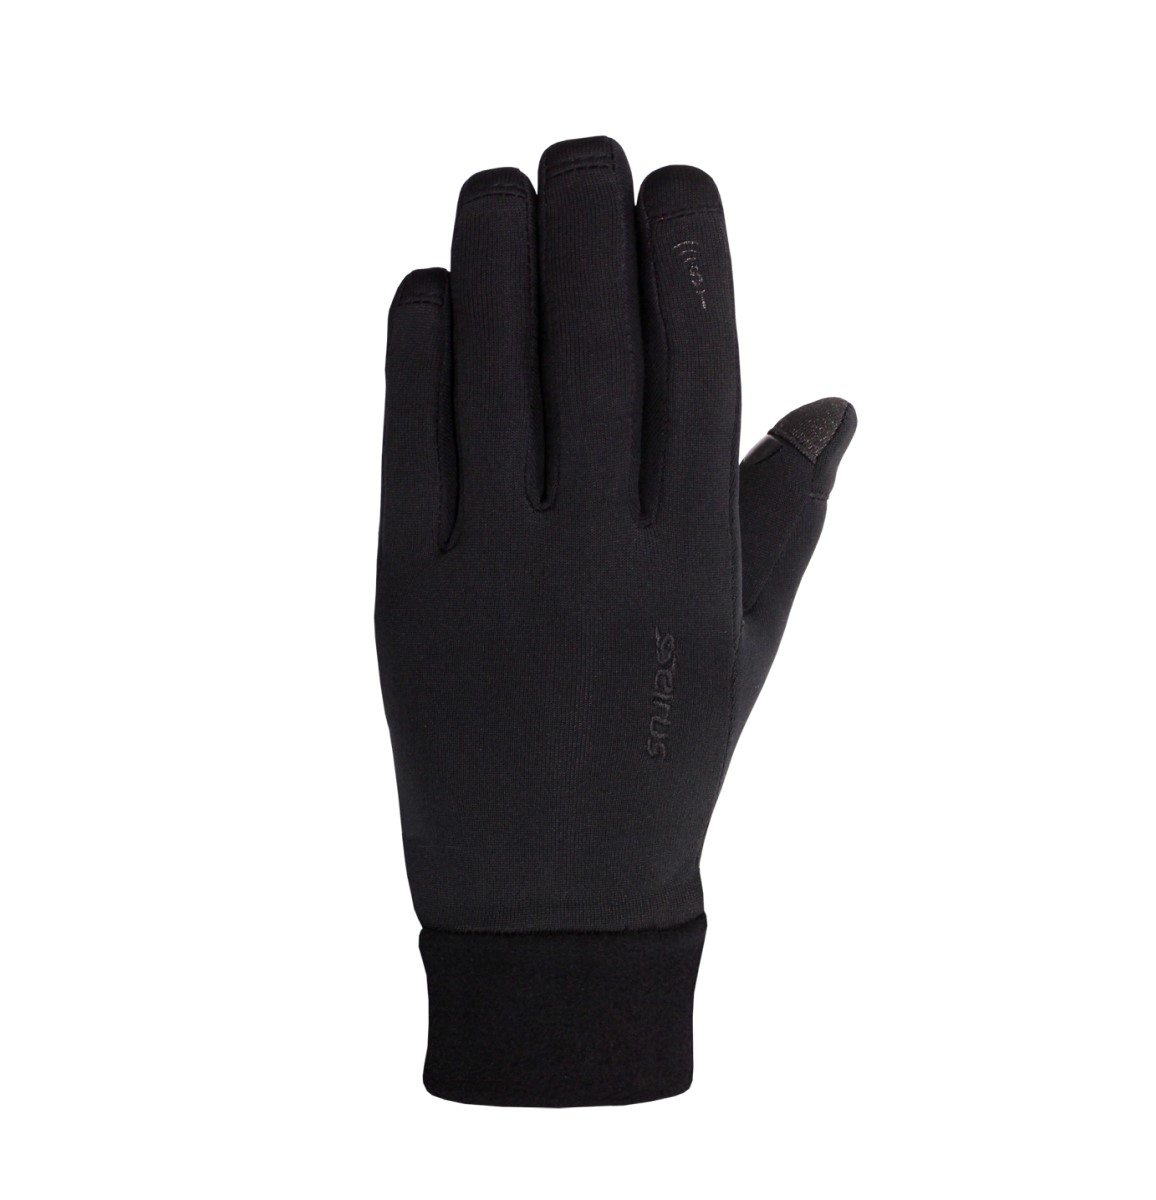 Seirus Soundtouch glove in Black